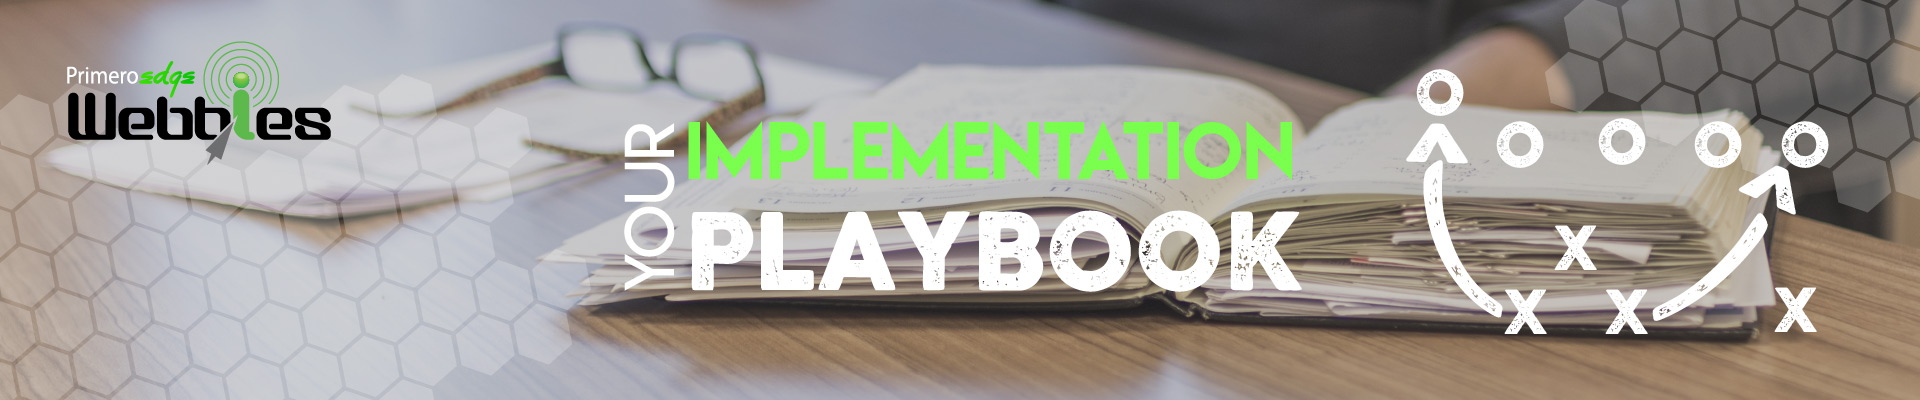 Your-Implementation-Playbook Header